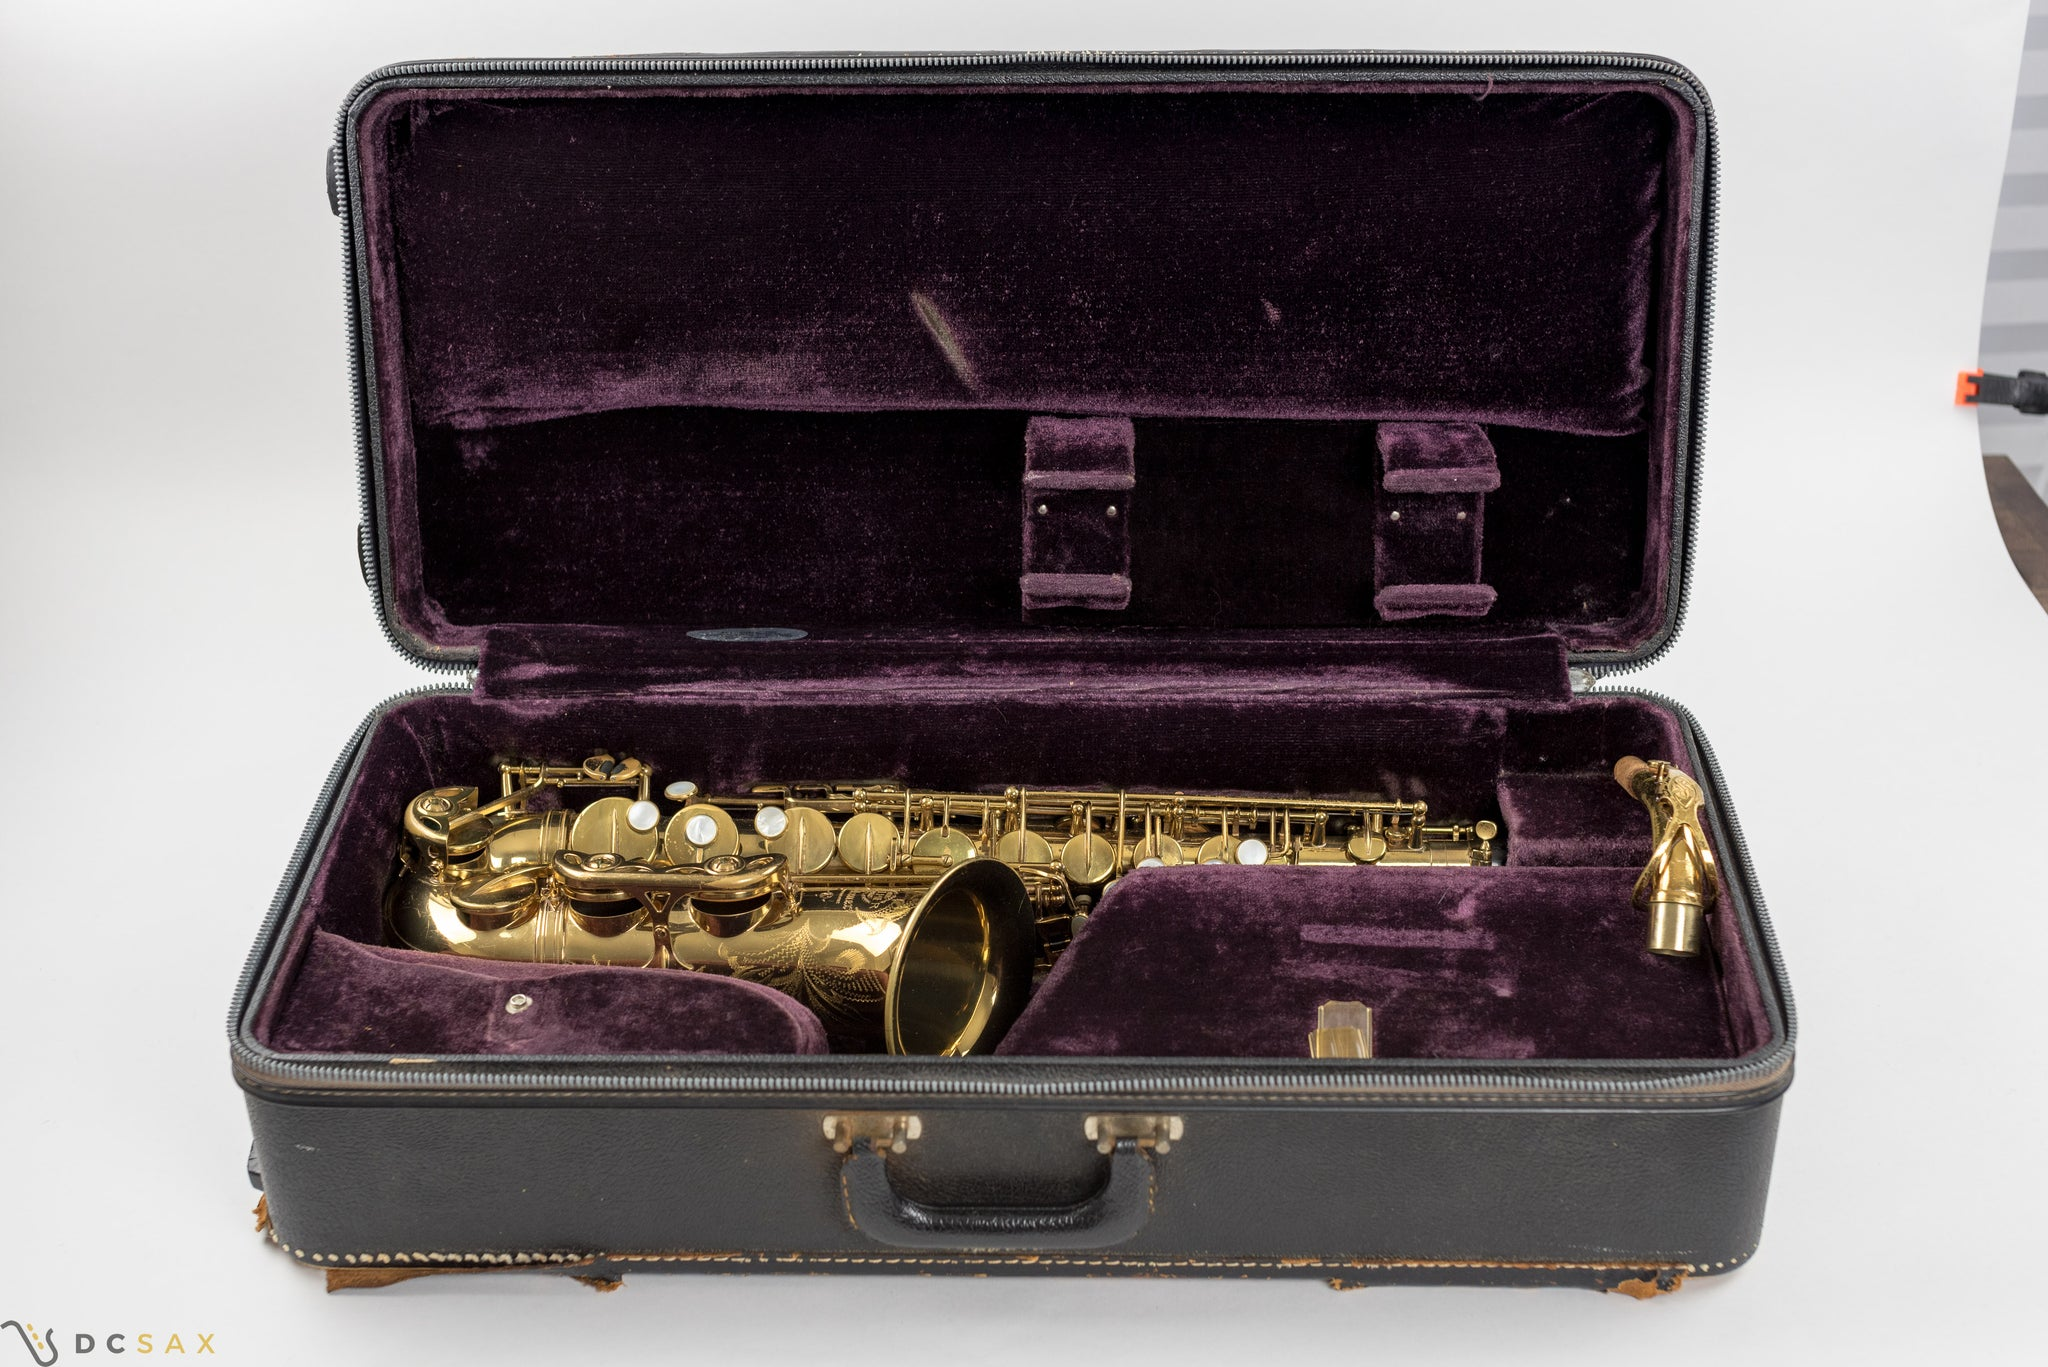 190,xxx Selmer Mark VI Alto Saxophone, 97% Original Lacquer, Fresh Overhaul